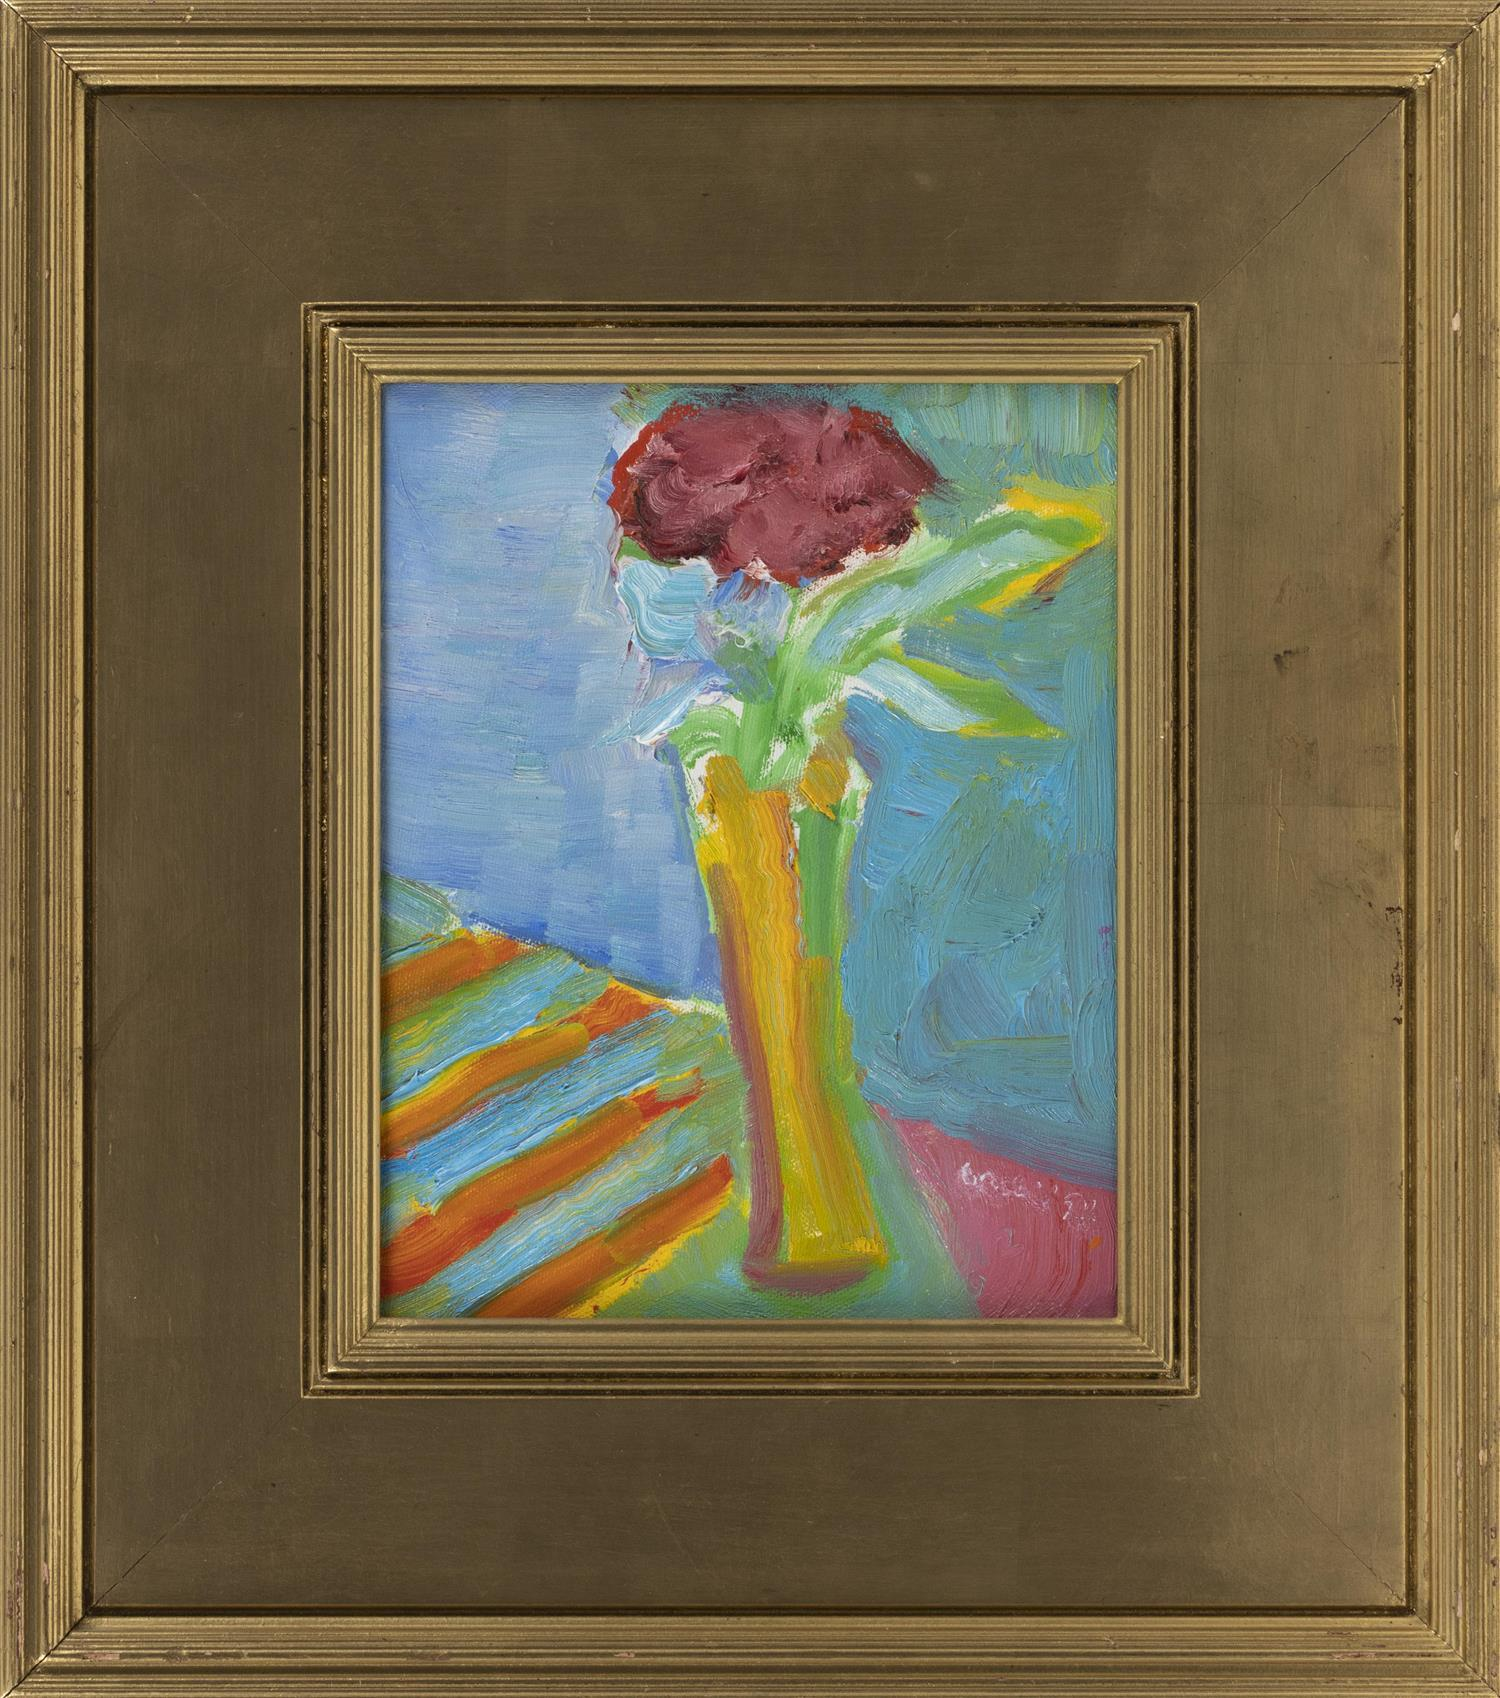 "JOHN GRILLO, Massachusetts, 1917-2014, Floral still life., Oil on canvas, 10"" x 8"". Framed 17"" x 15""."